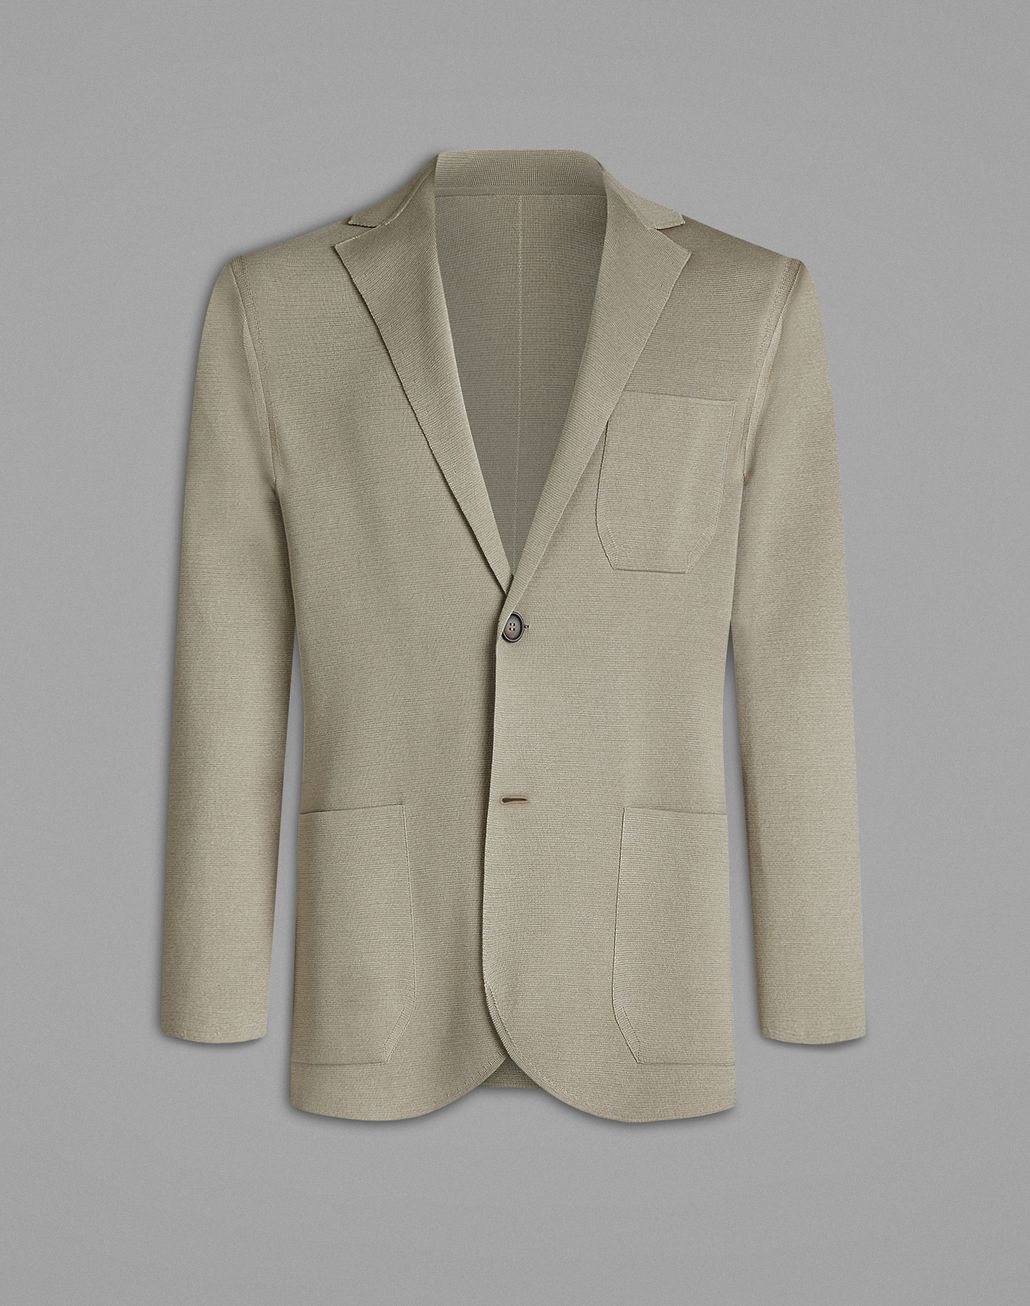 BRIONI Beige Knitted Jacket Jackets Man f